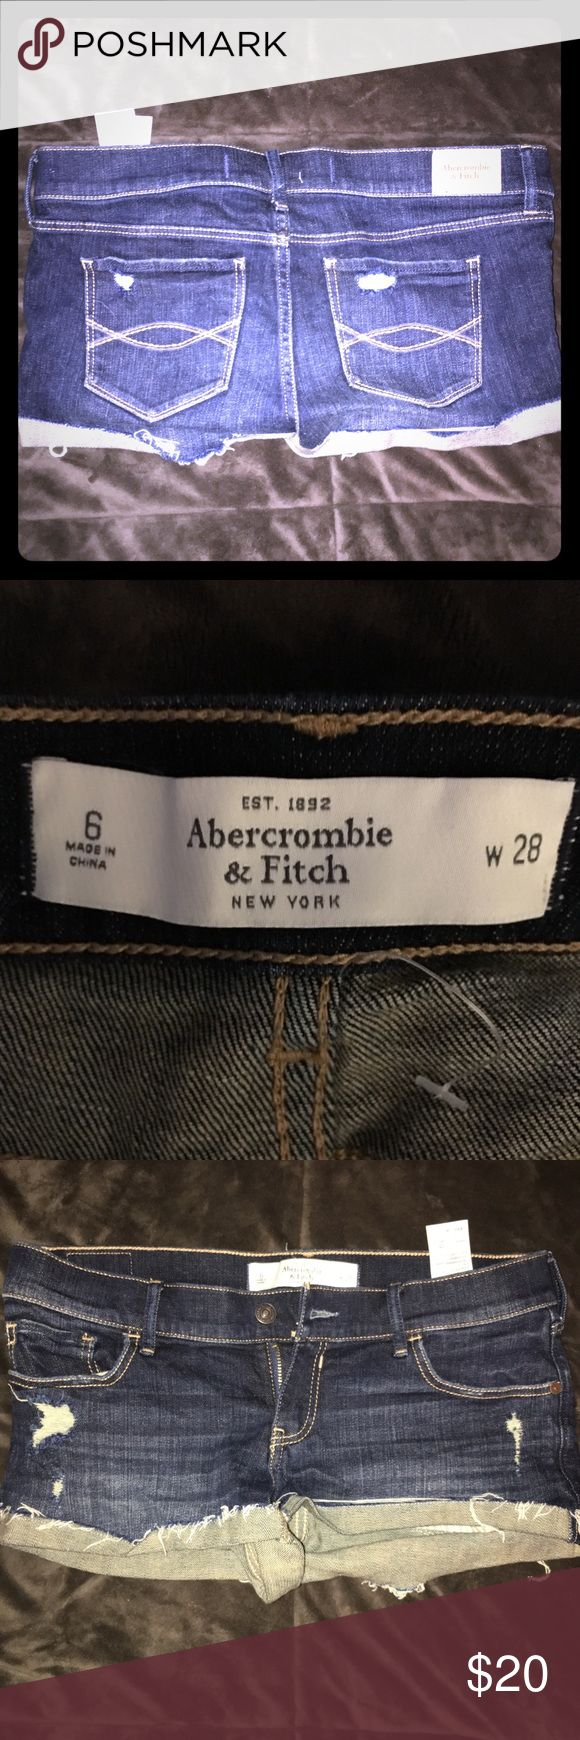 Abercrombie and Fitch shorts Abercrombie and Fitch shorts 💙 Size 6 - NEVER WORN 💙 Abercrombie & Fitch Shorts Jean Shorts